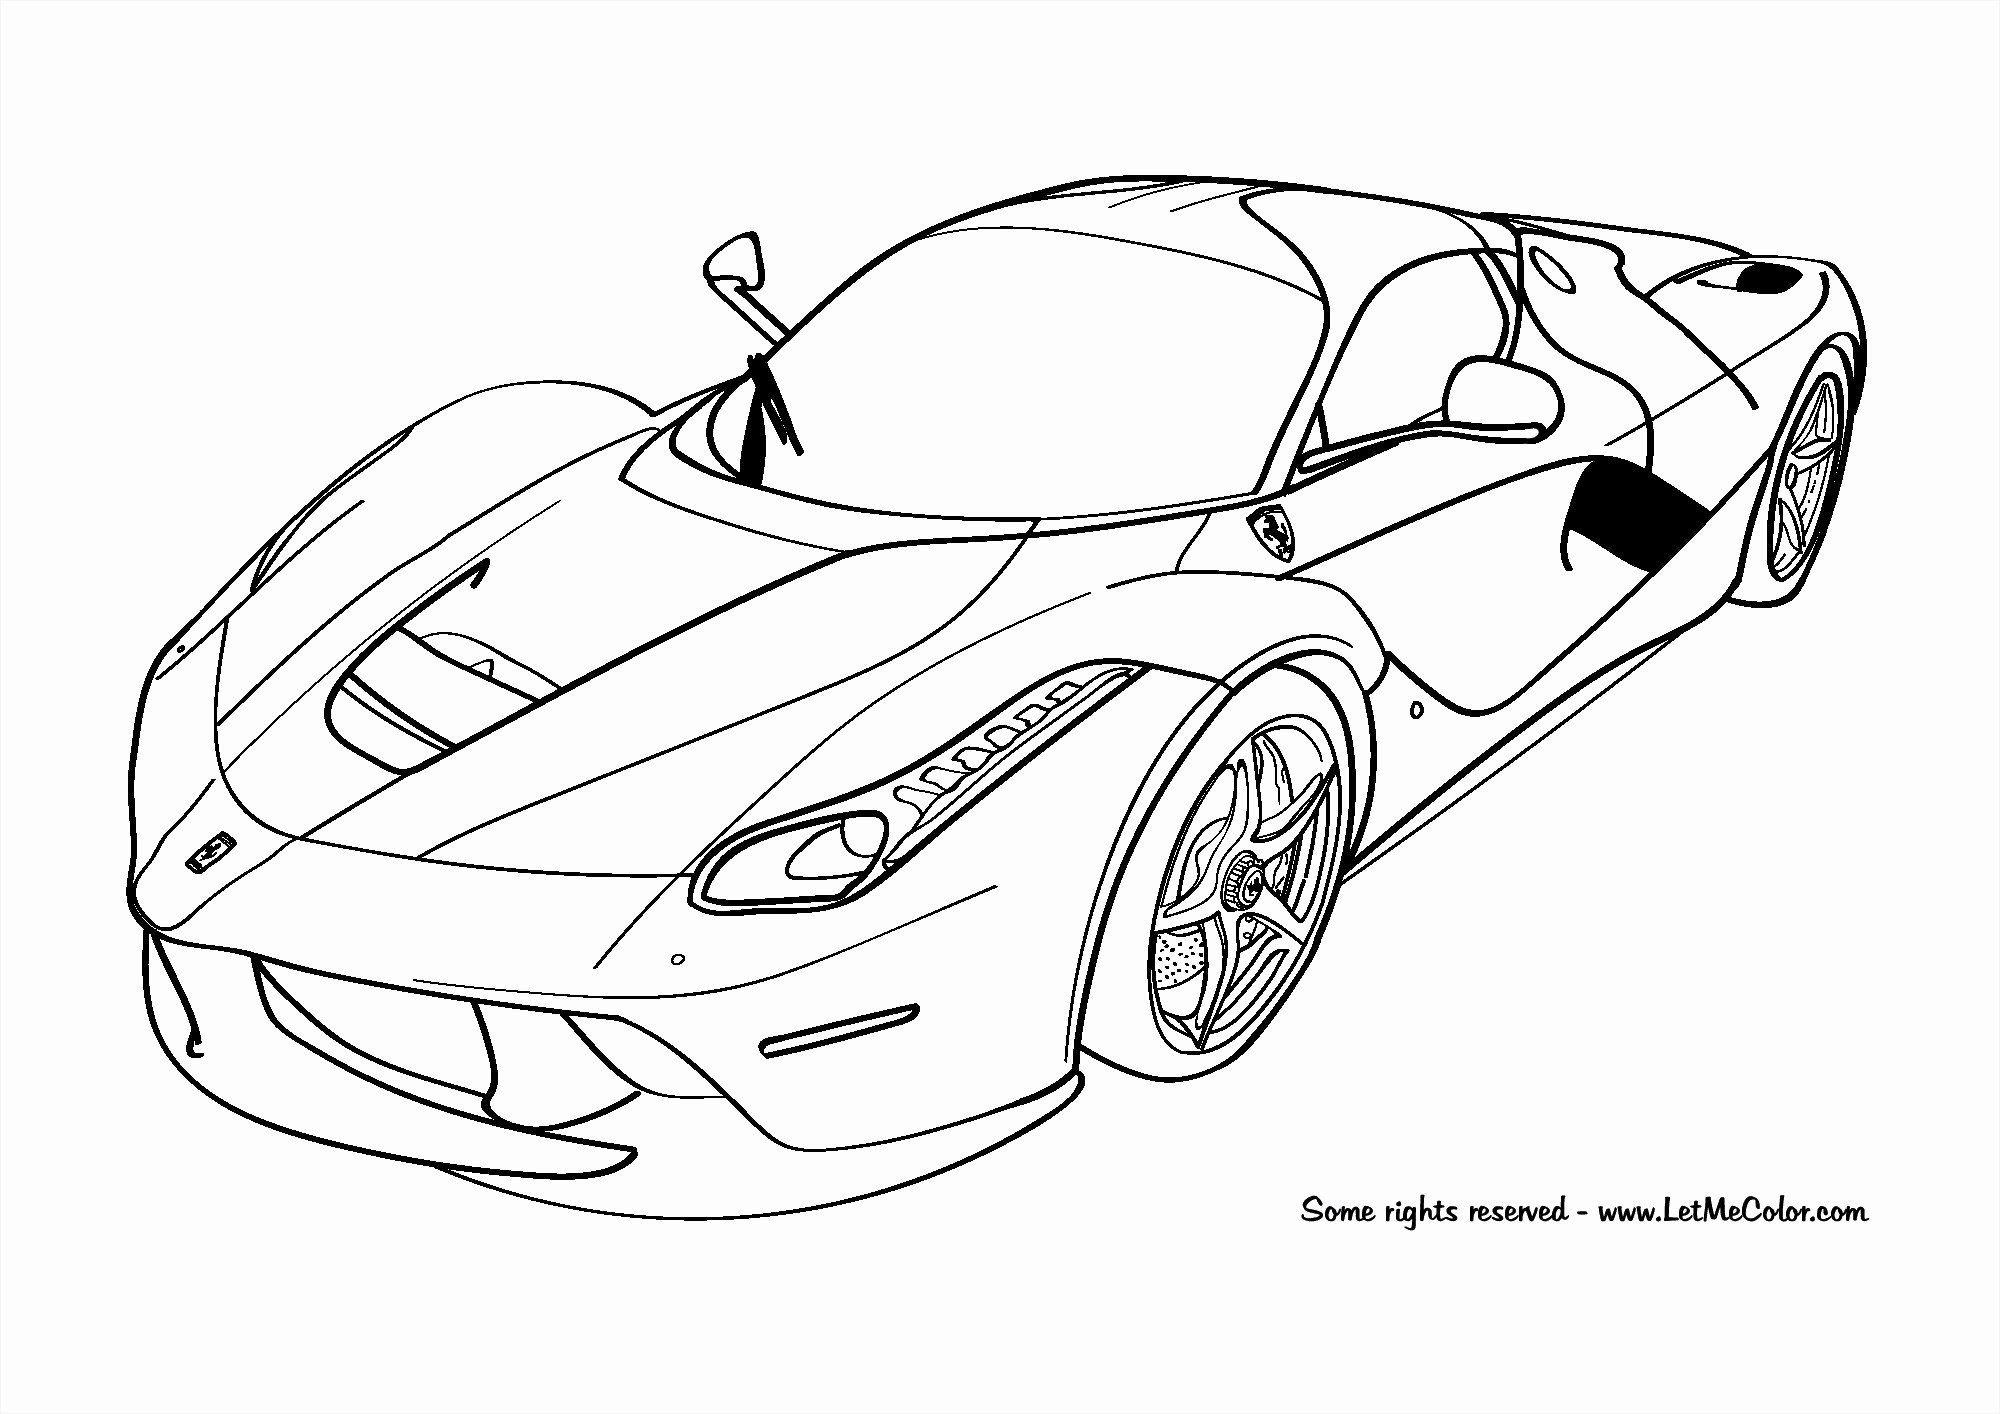 14+ Sports car clipart black and white info